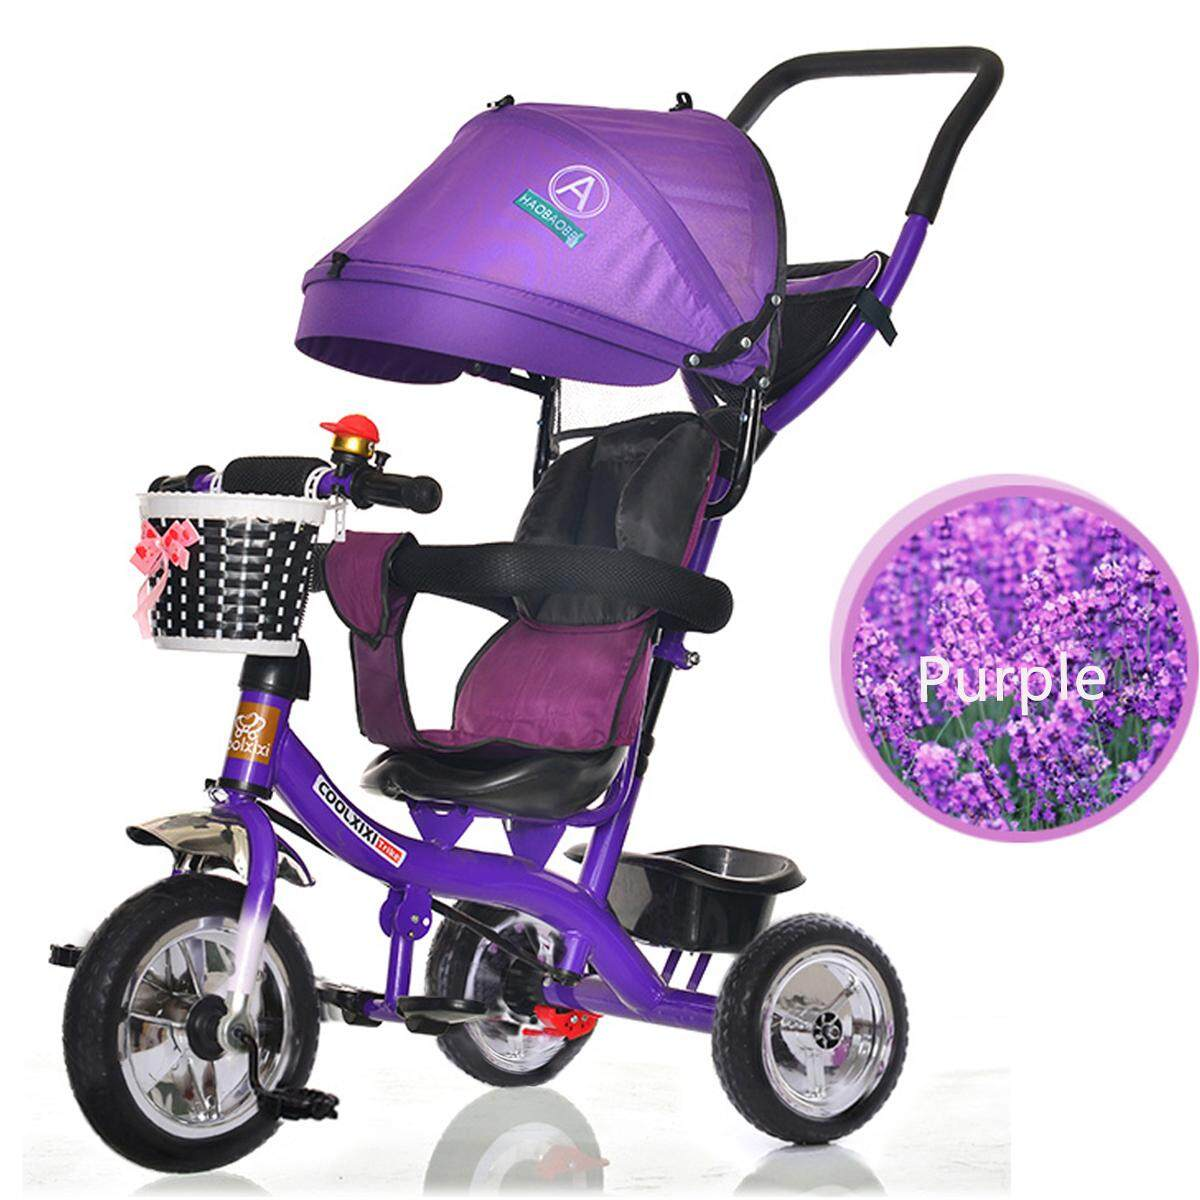 Smart Design 4 In 1 Children Tricycle Kids Trikes 3 Wheel Bike With Rotating Seat By Teamwin.